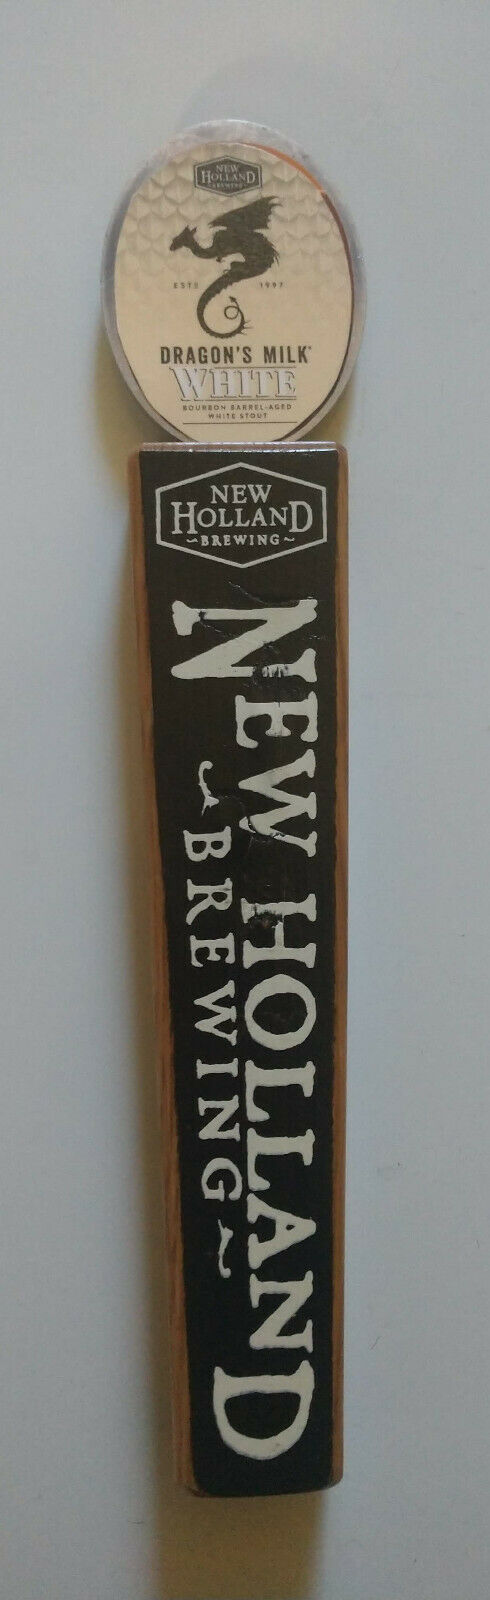 1 Four Peaks Brewing Signature Beer Small Tap Handle 1094964 S Steel /& Wood NEW